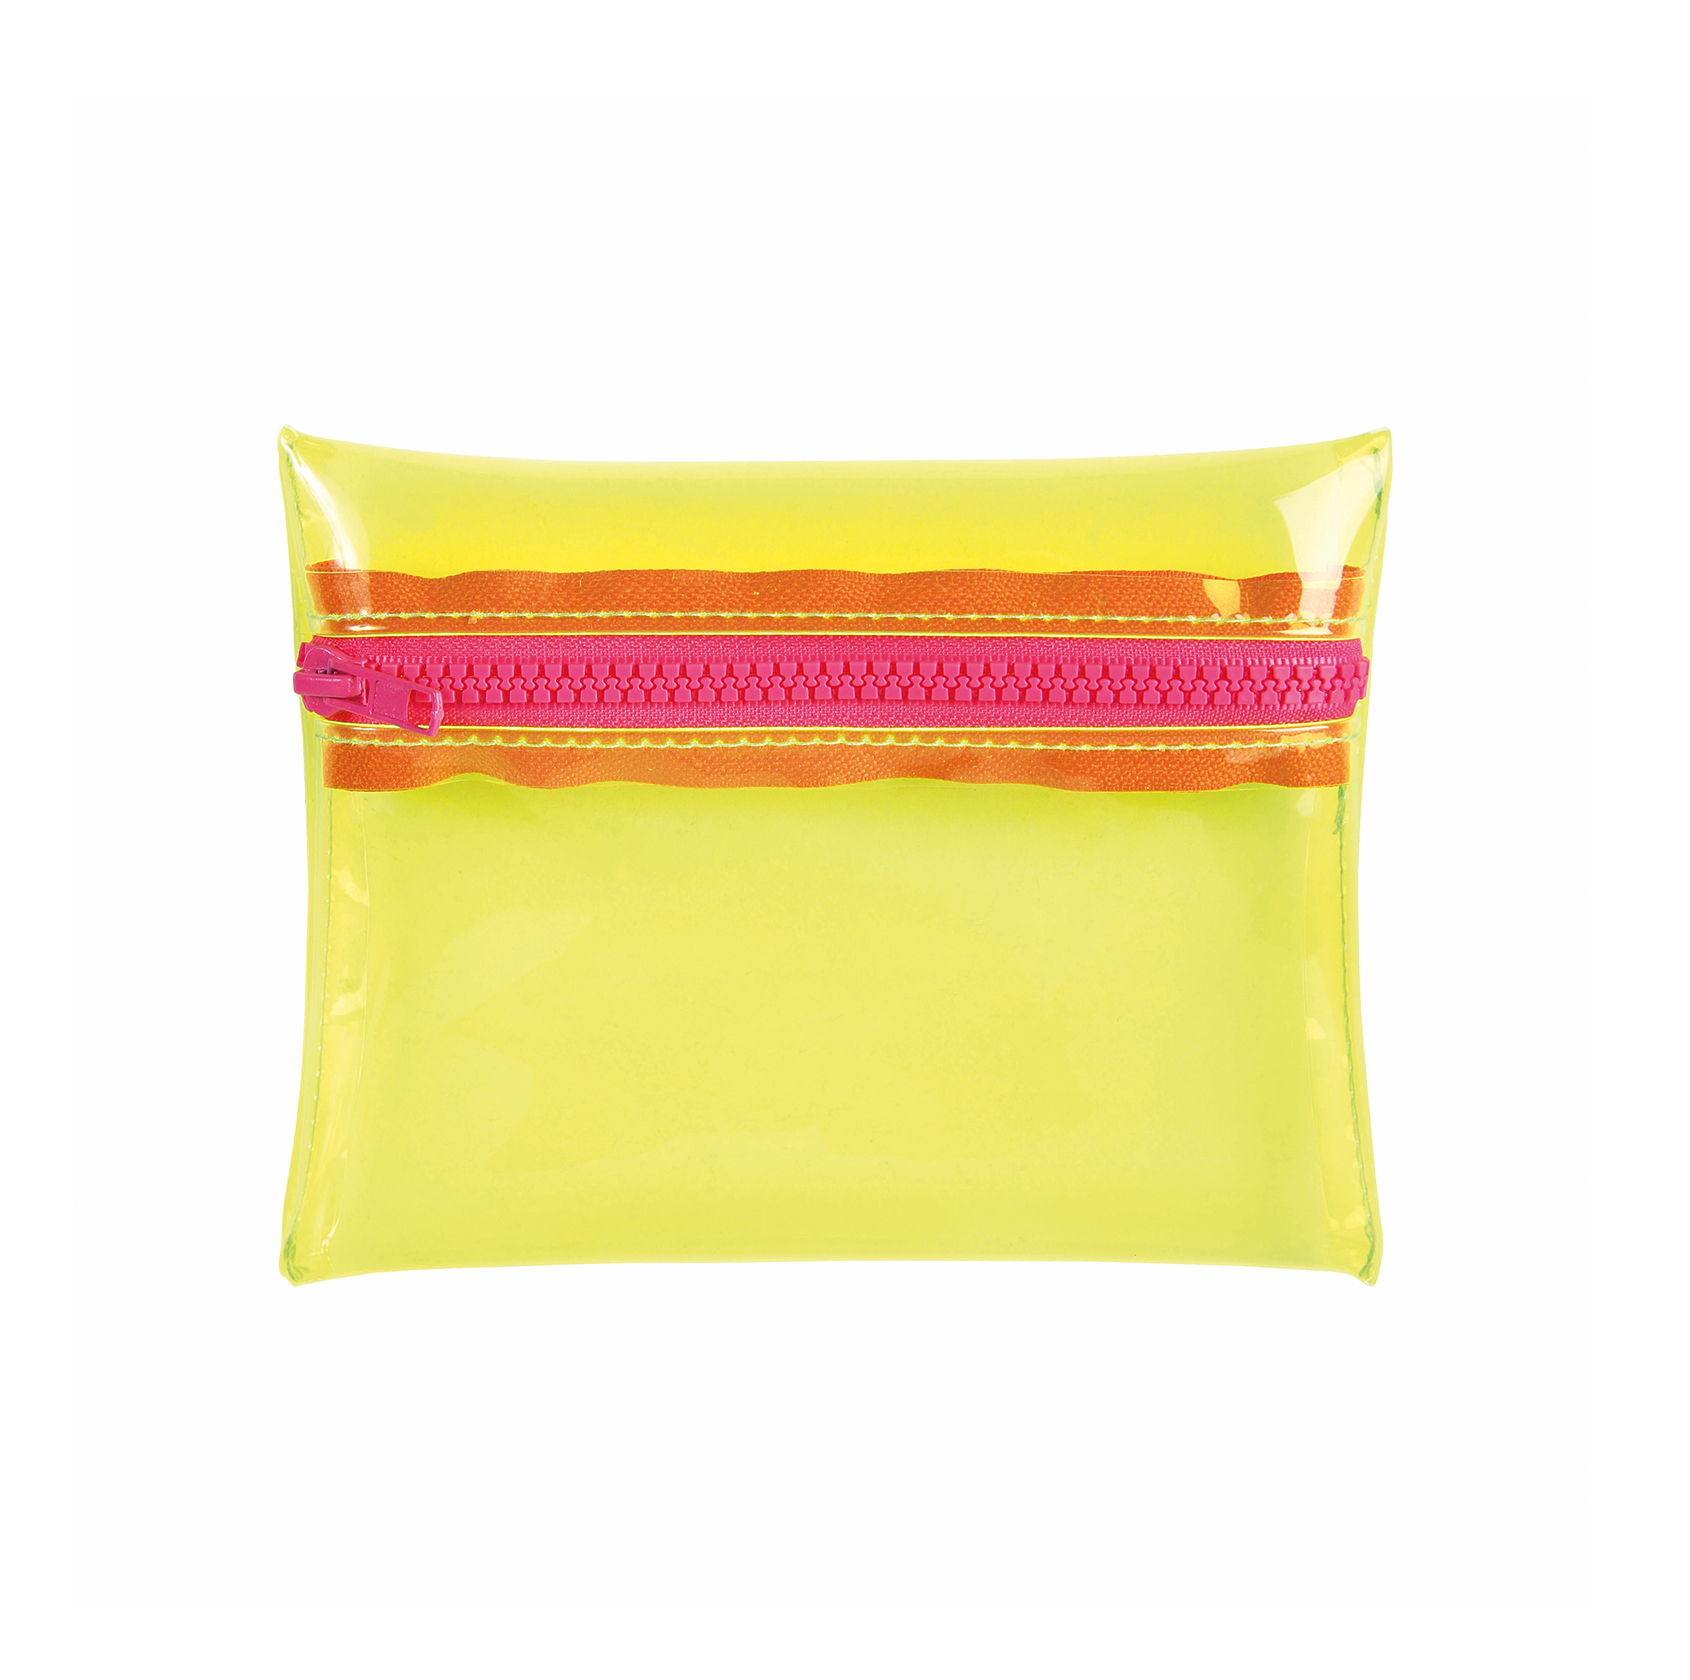 &k-case-neon-yellow-small-klevering